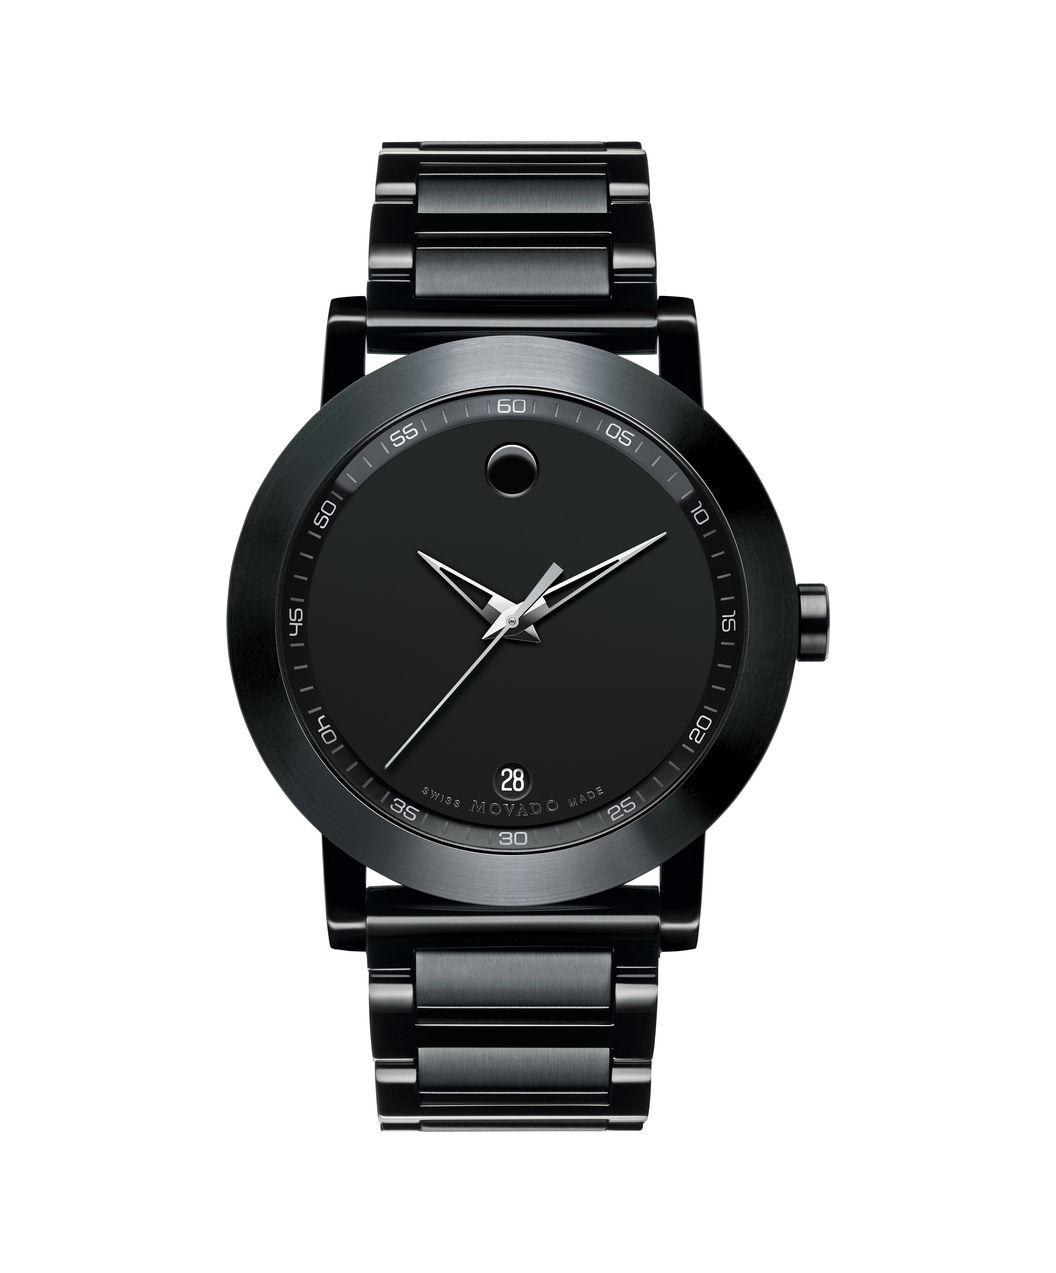 Museum Mens Watch - Stainless Steel